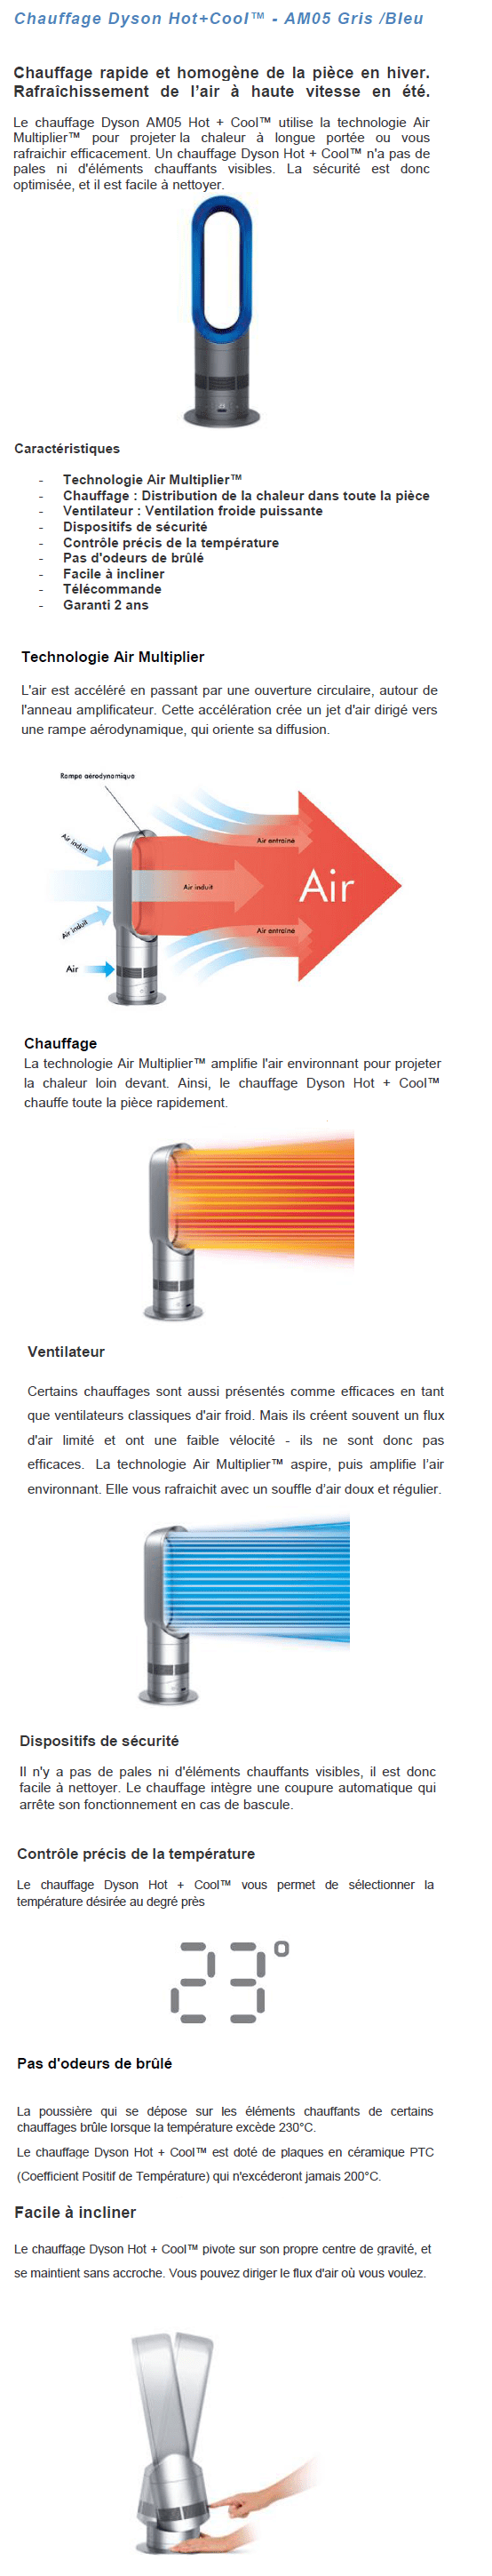 destockage dyson am05 ventilateur chauffage hot cool ventilateur au meilleur prix soldes. Black Bedroom Furniture Sets. Home Design Ideas